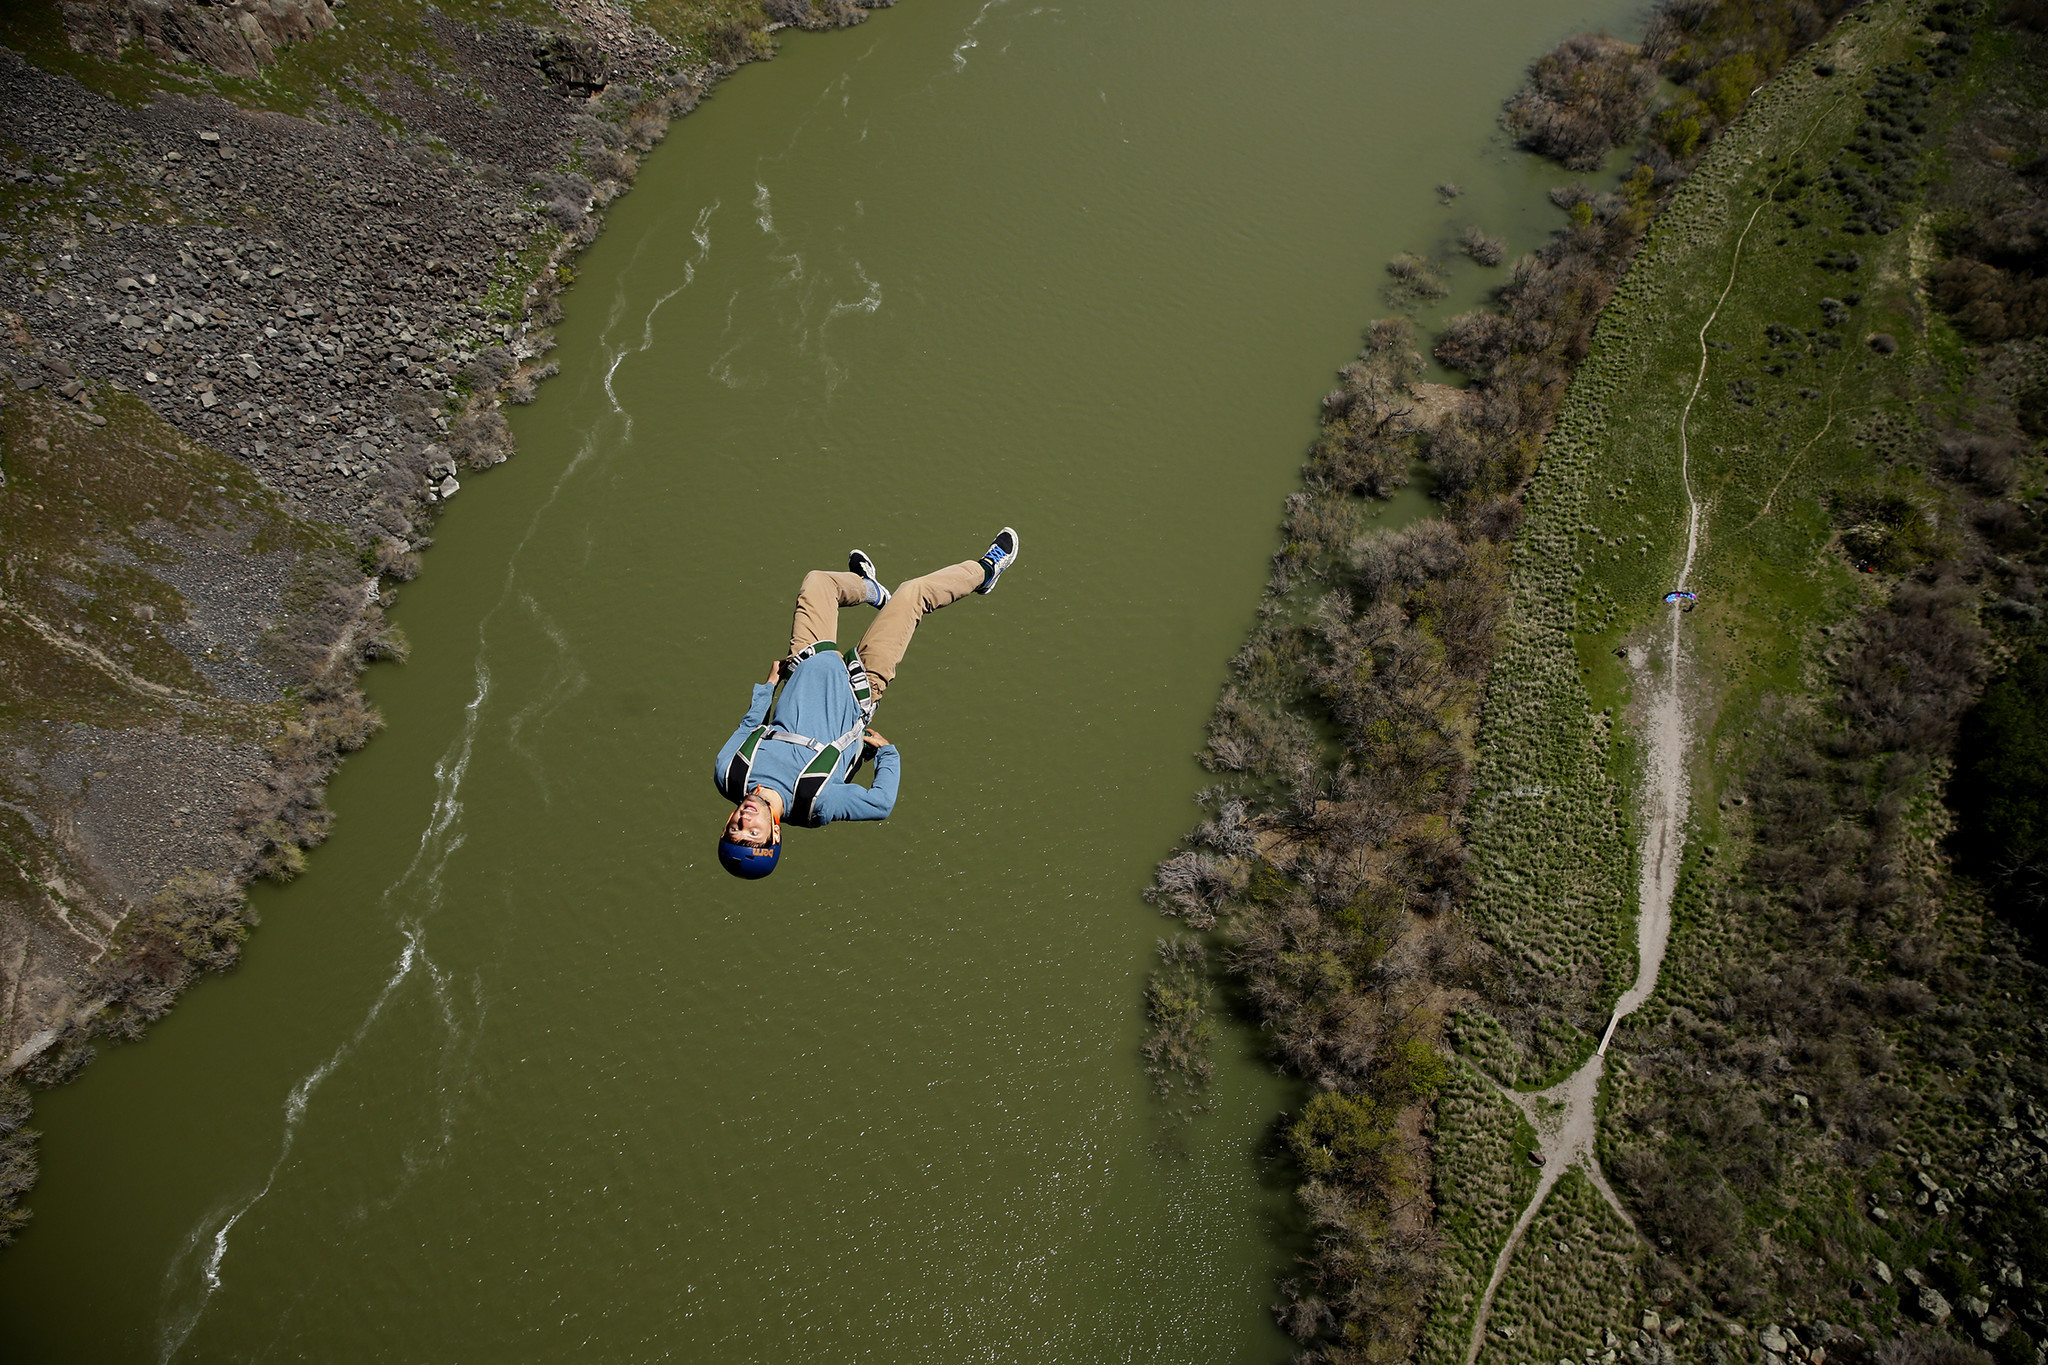 A base jumper leaps from the Perrine Bridge above the Snake River, where one can jump without a permit.